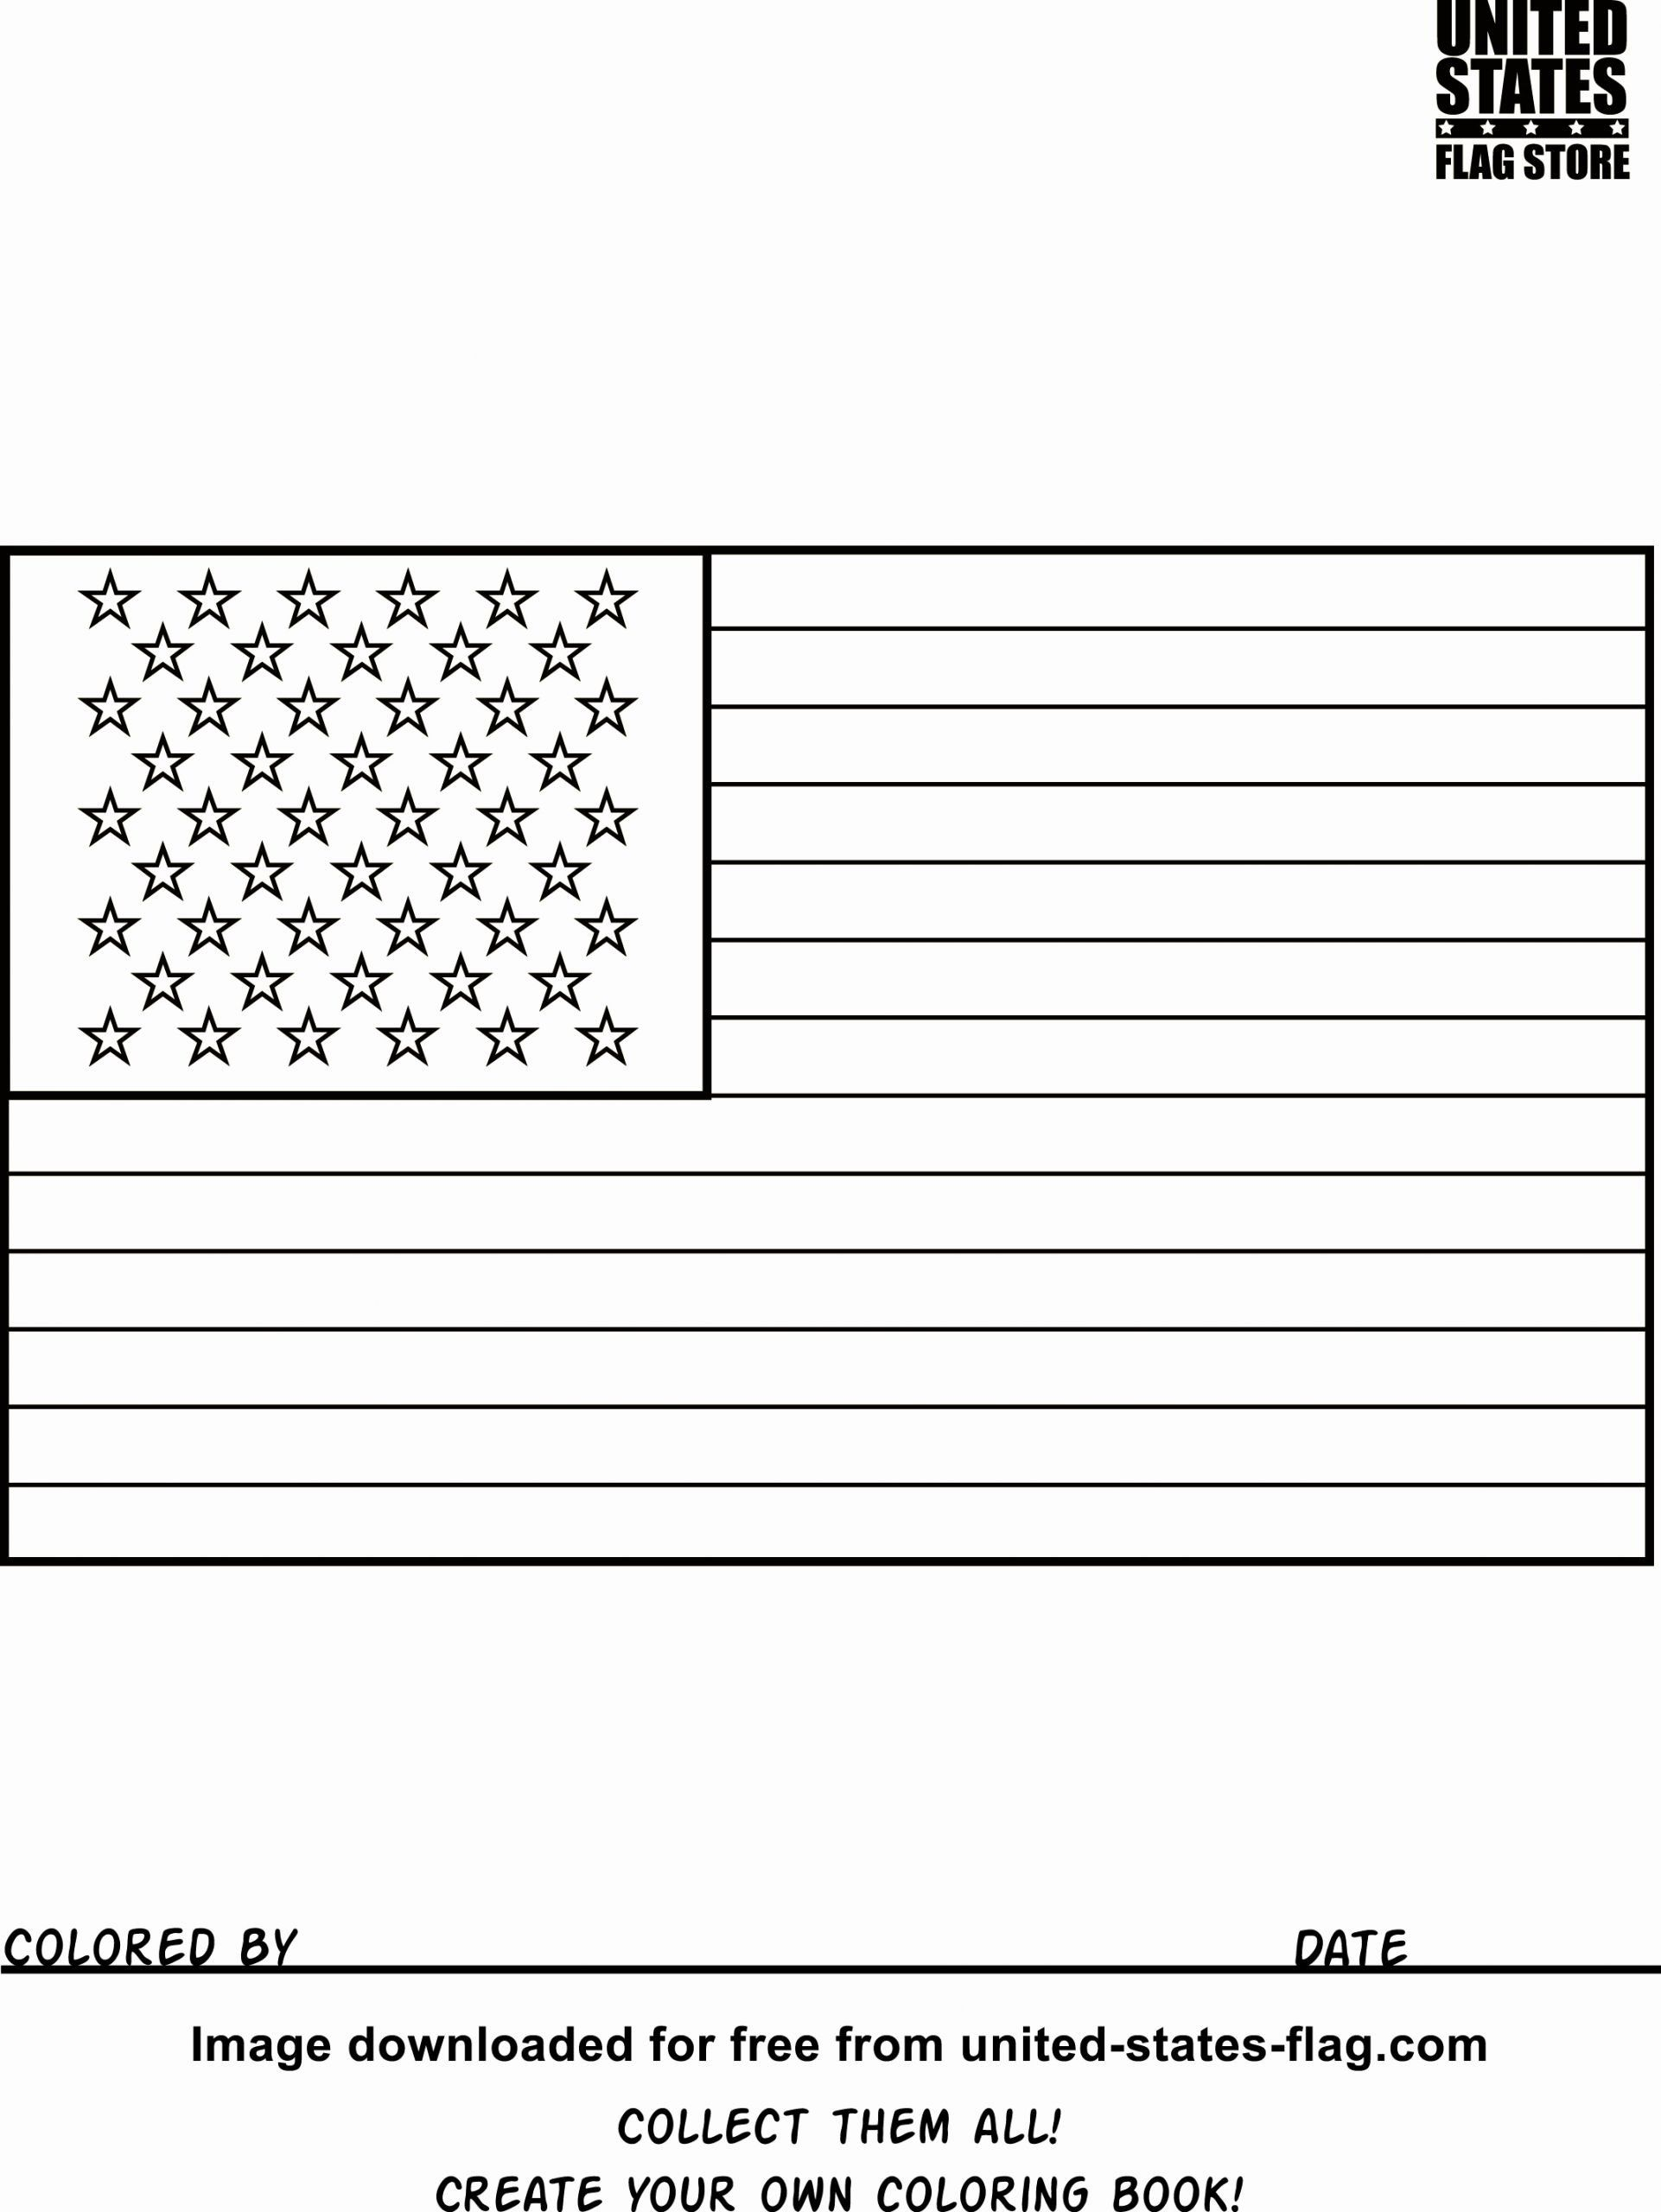 United States Flag Coloring Beautiful Free American Flag Coloring